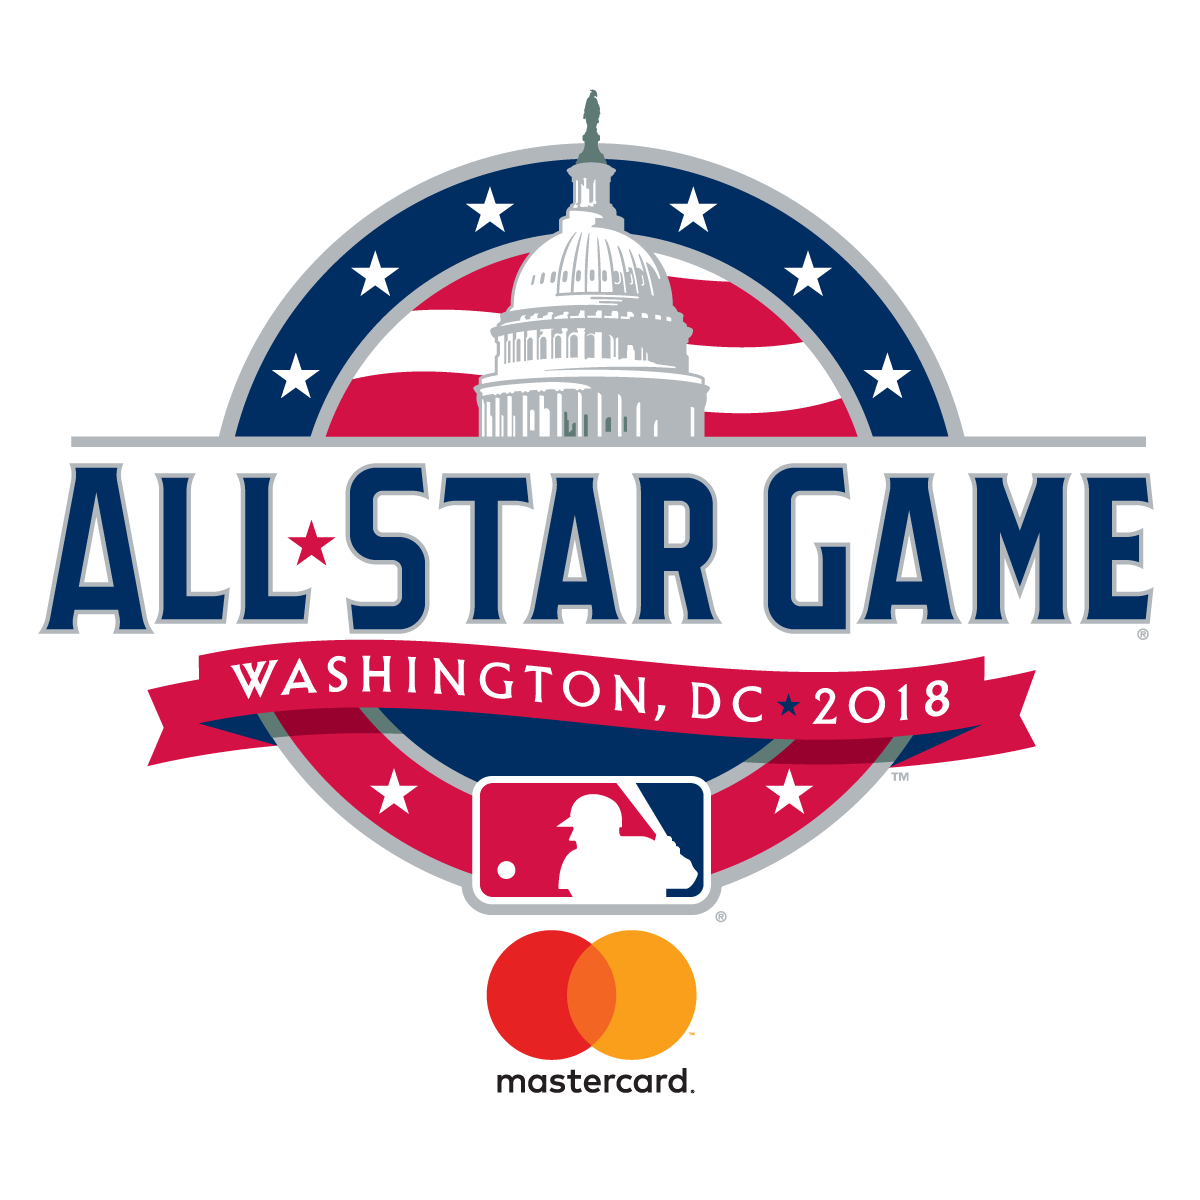 Mastercard Offers Exclusive Pre-Sale to MLB All-Star Game in Washington, D.C.